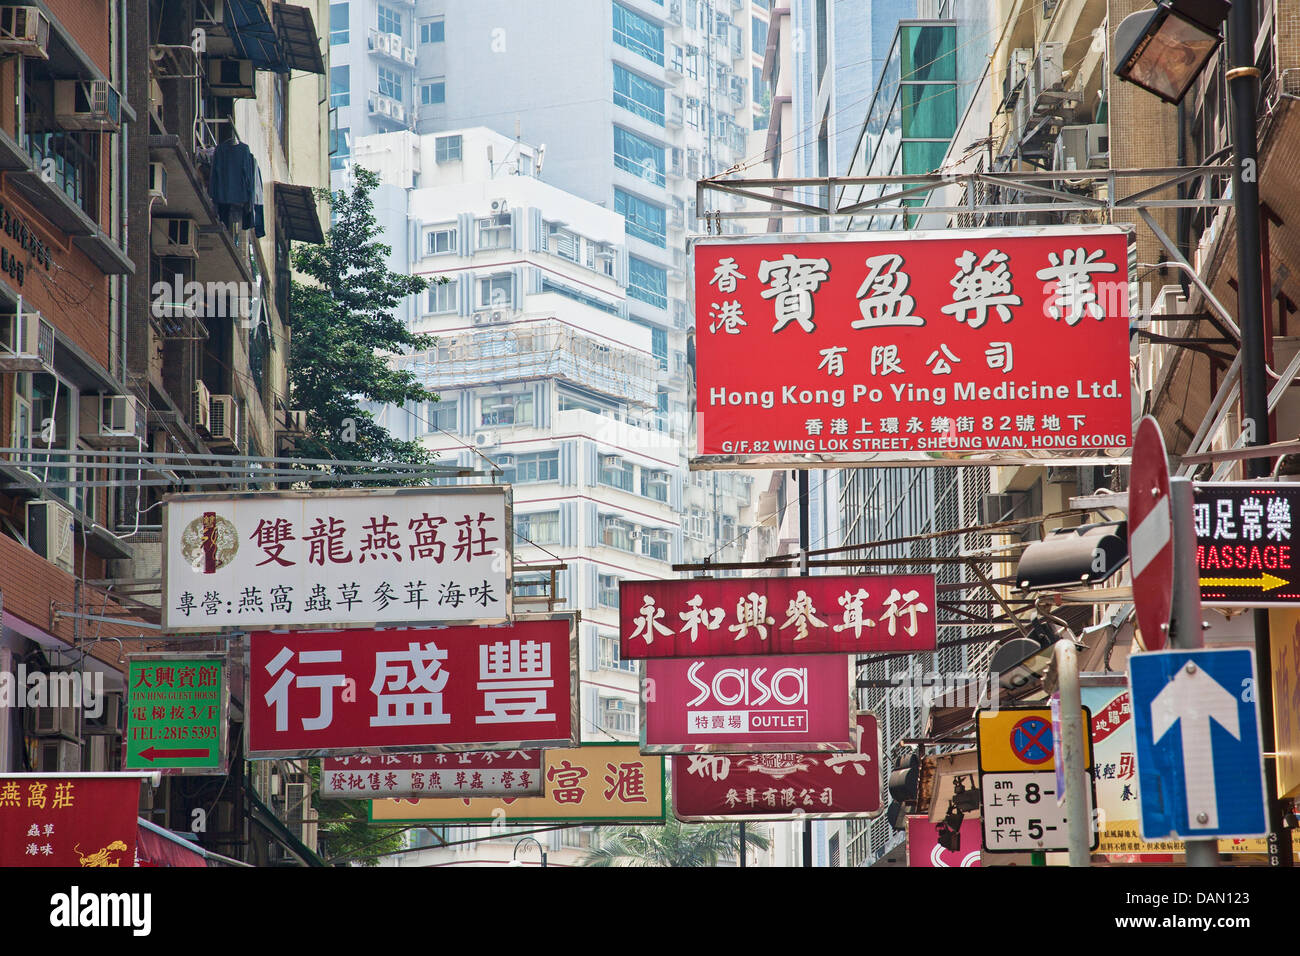 One of the countless busy streets in Hong Kong showing the signs that hang over head - Stock Image